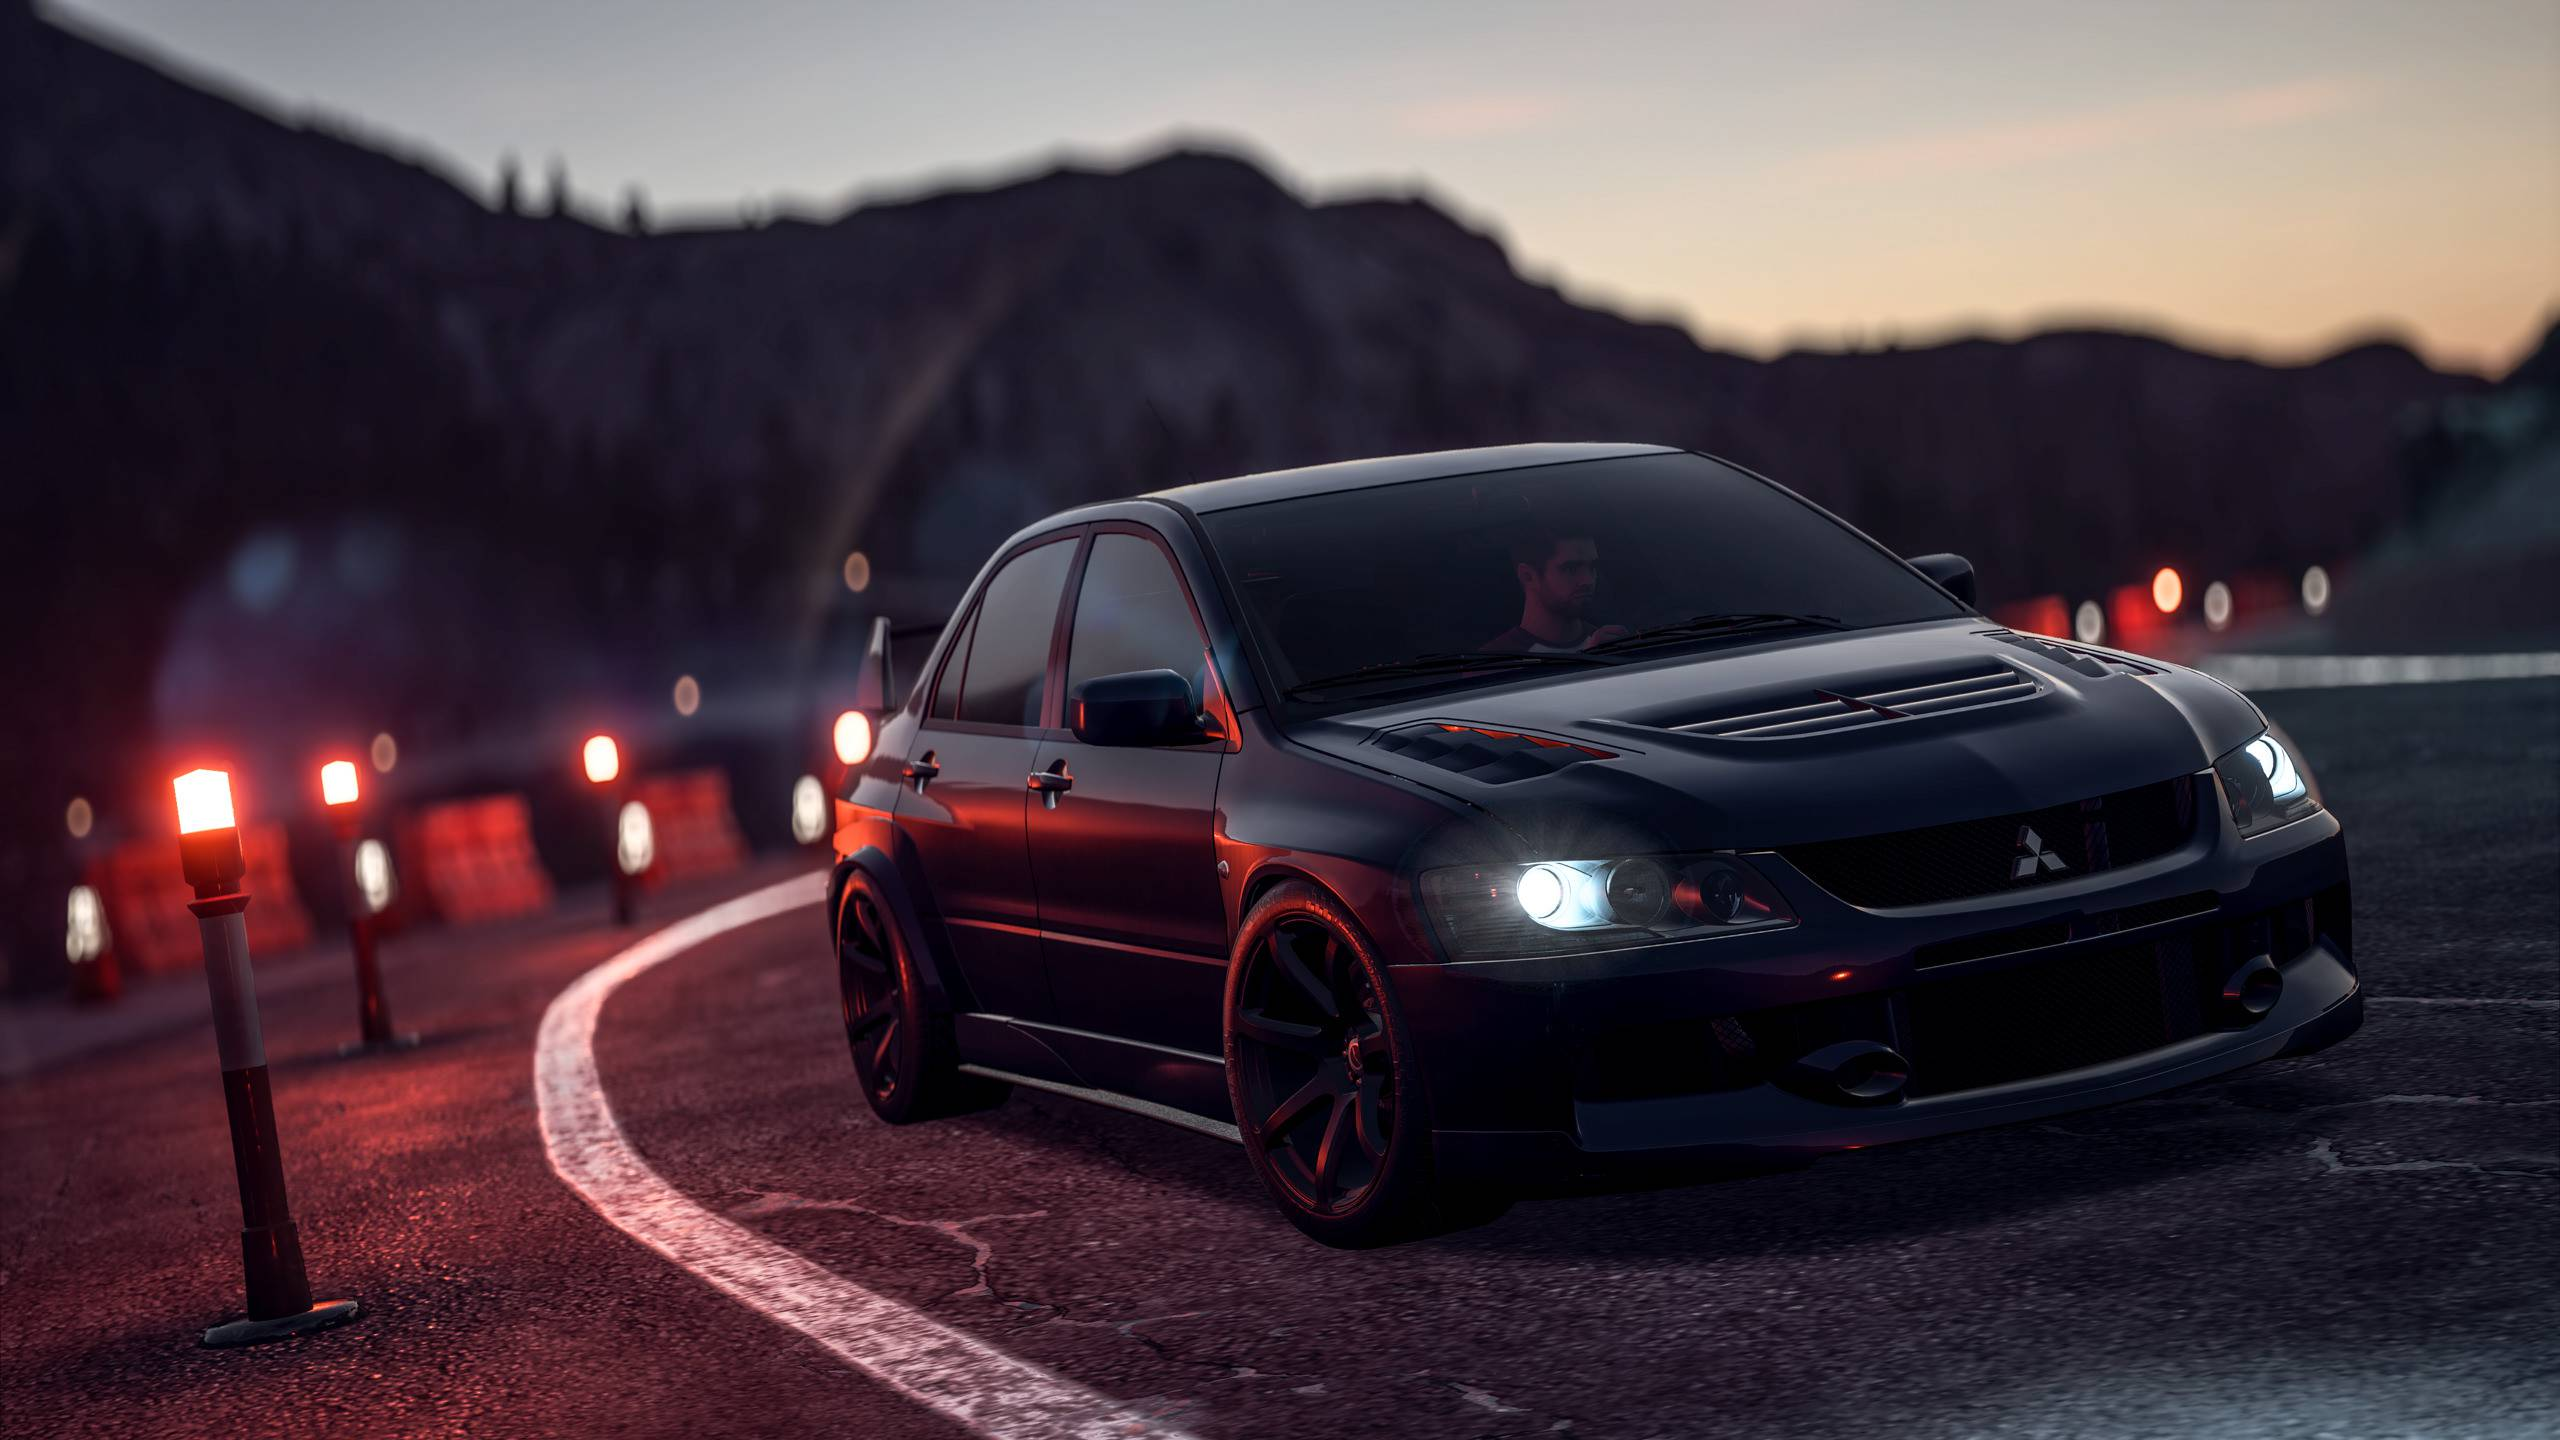 Need For Speed Payback Under The Hood Wallpaper 2560x1440